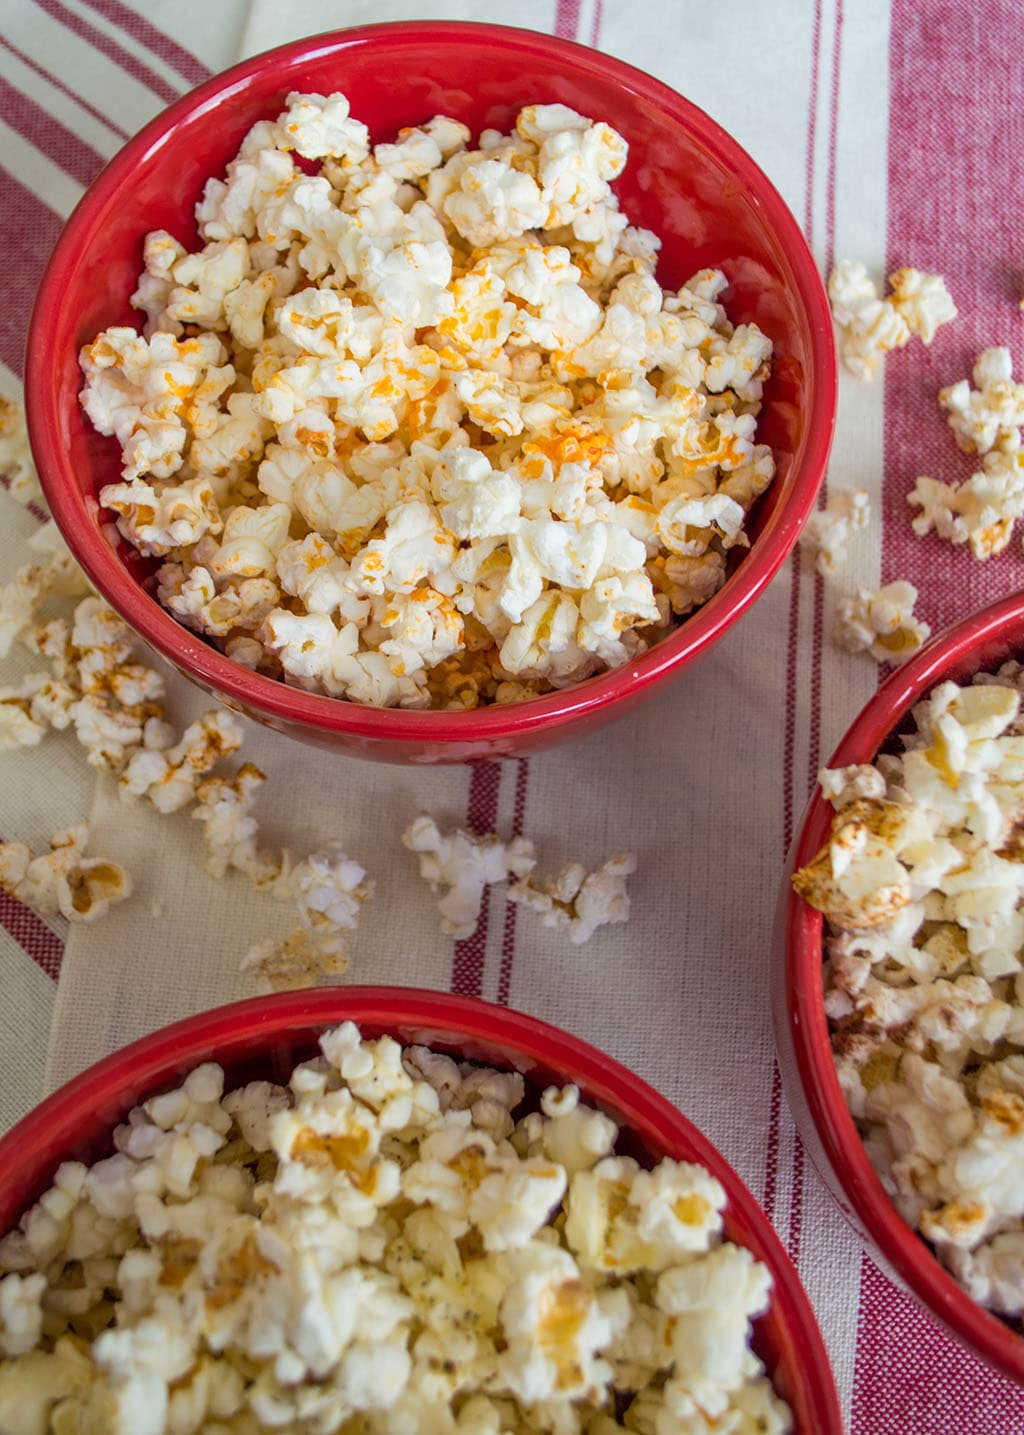 Three Flavors Of Homemade Microwave Popcorn A Healthy Satisfying Snack That Has Only 120